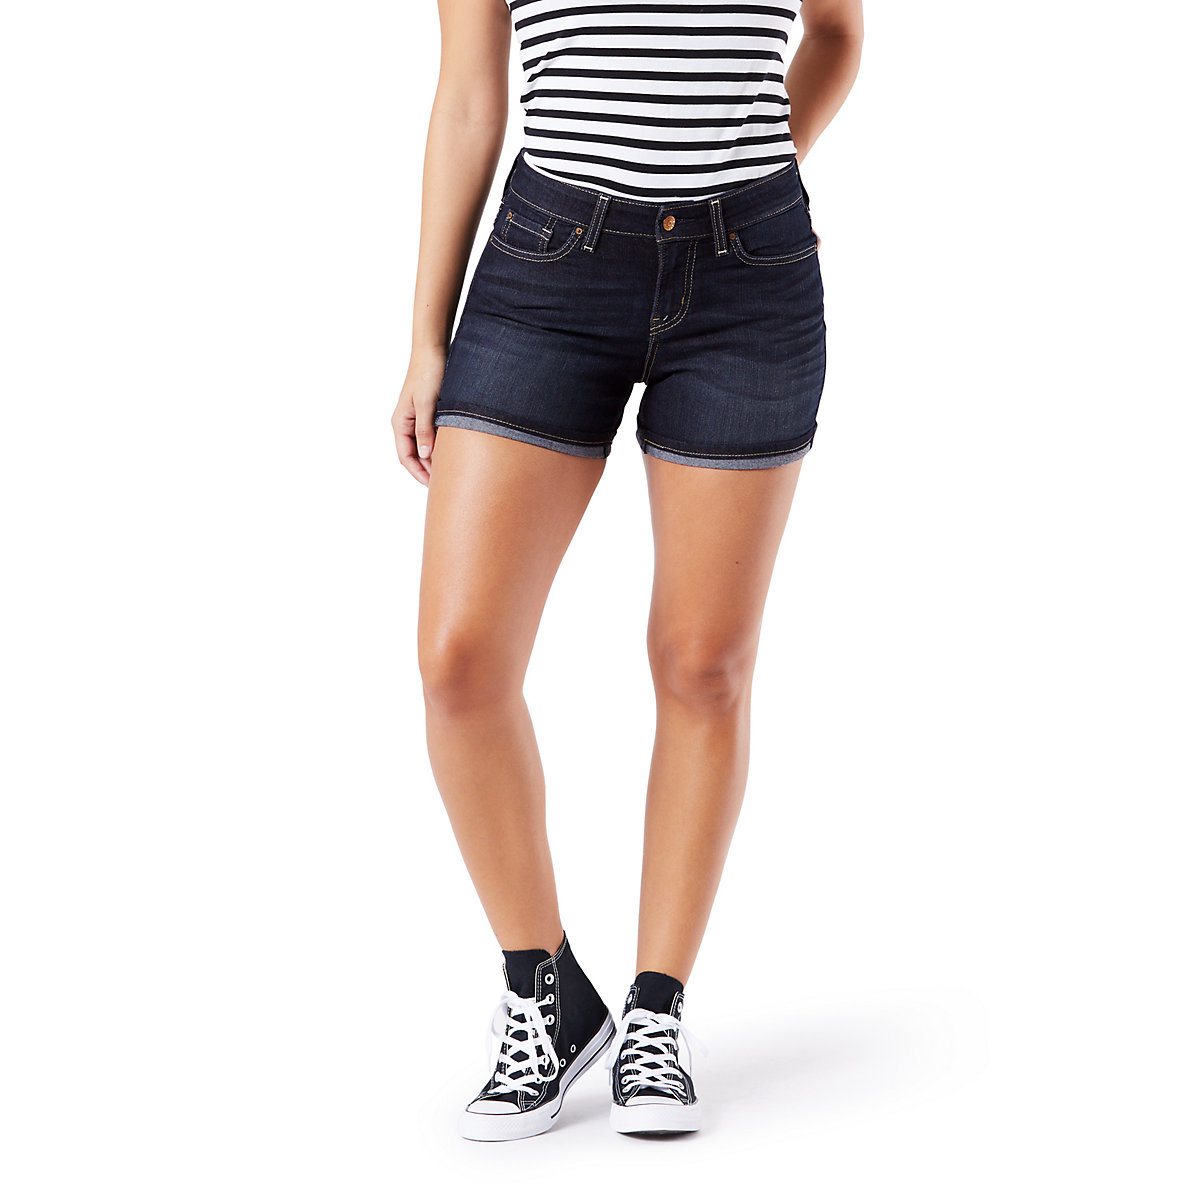 c490cf48 Details about Levi's Signature Gold By Levi Strauss NEW Stormy Sky Women  Mid-Rise Denim Shorts